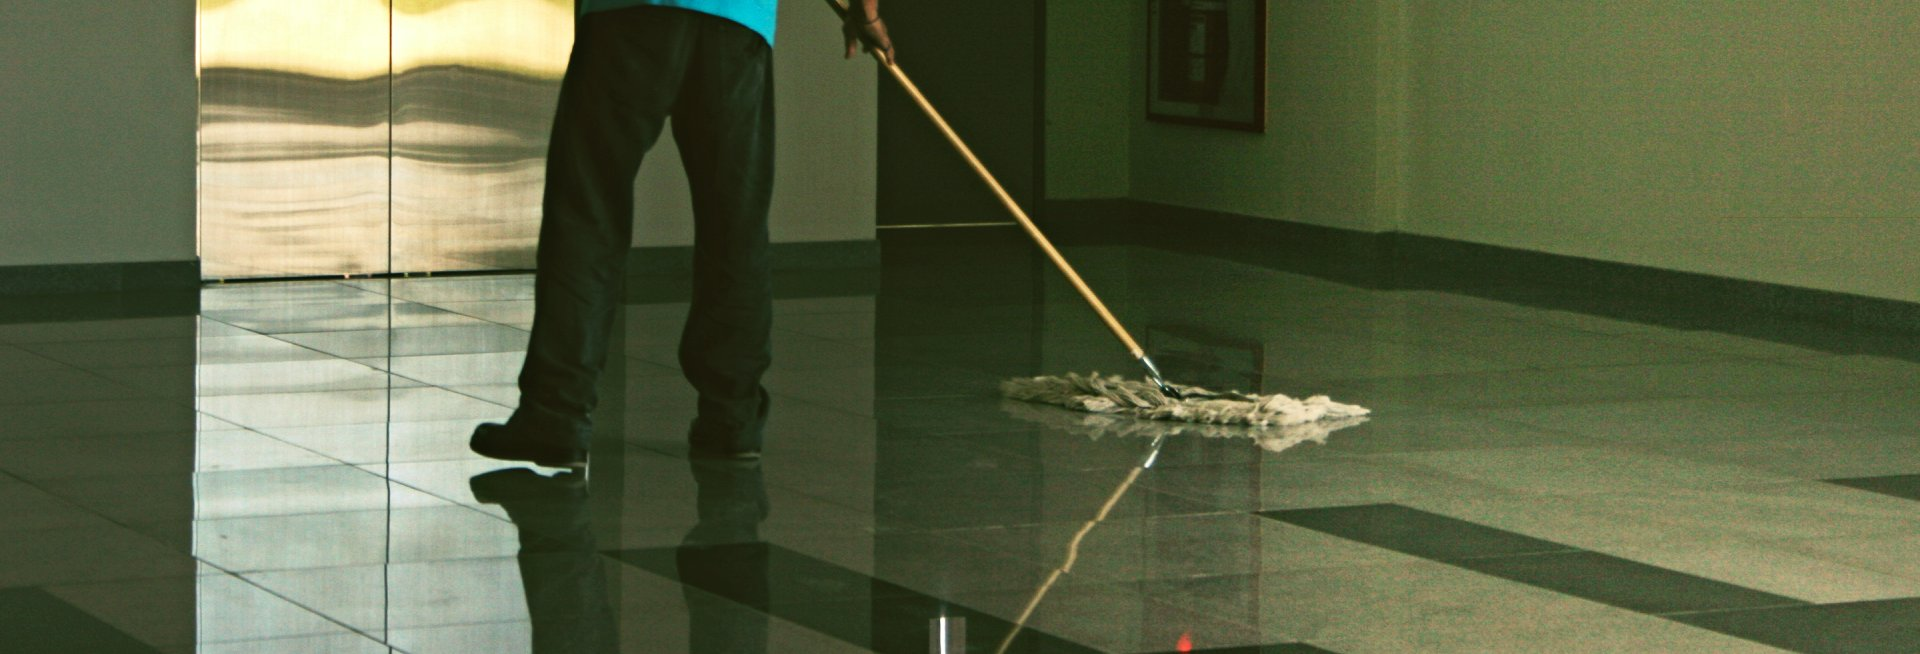 Building Cleaners Insurance